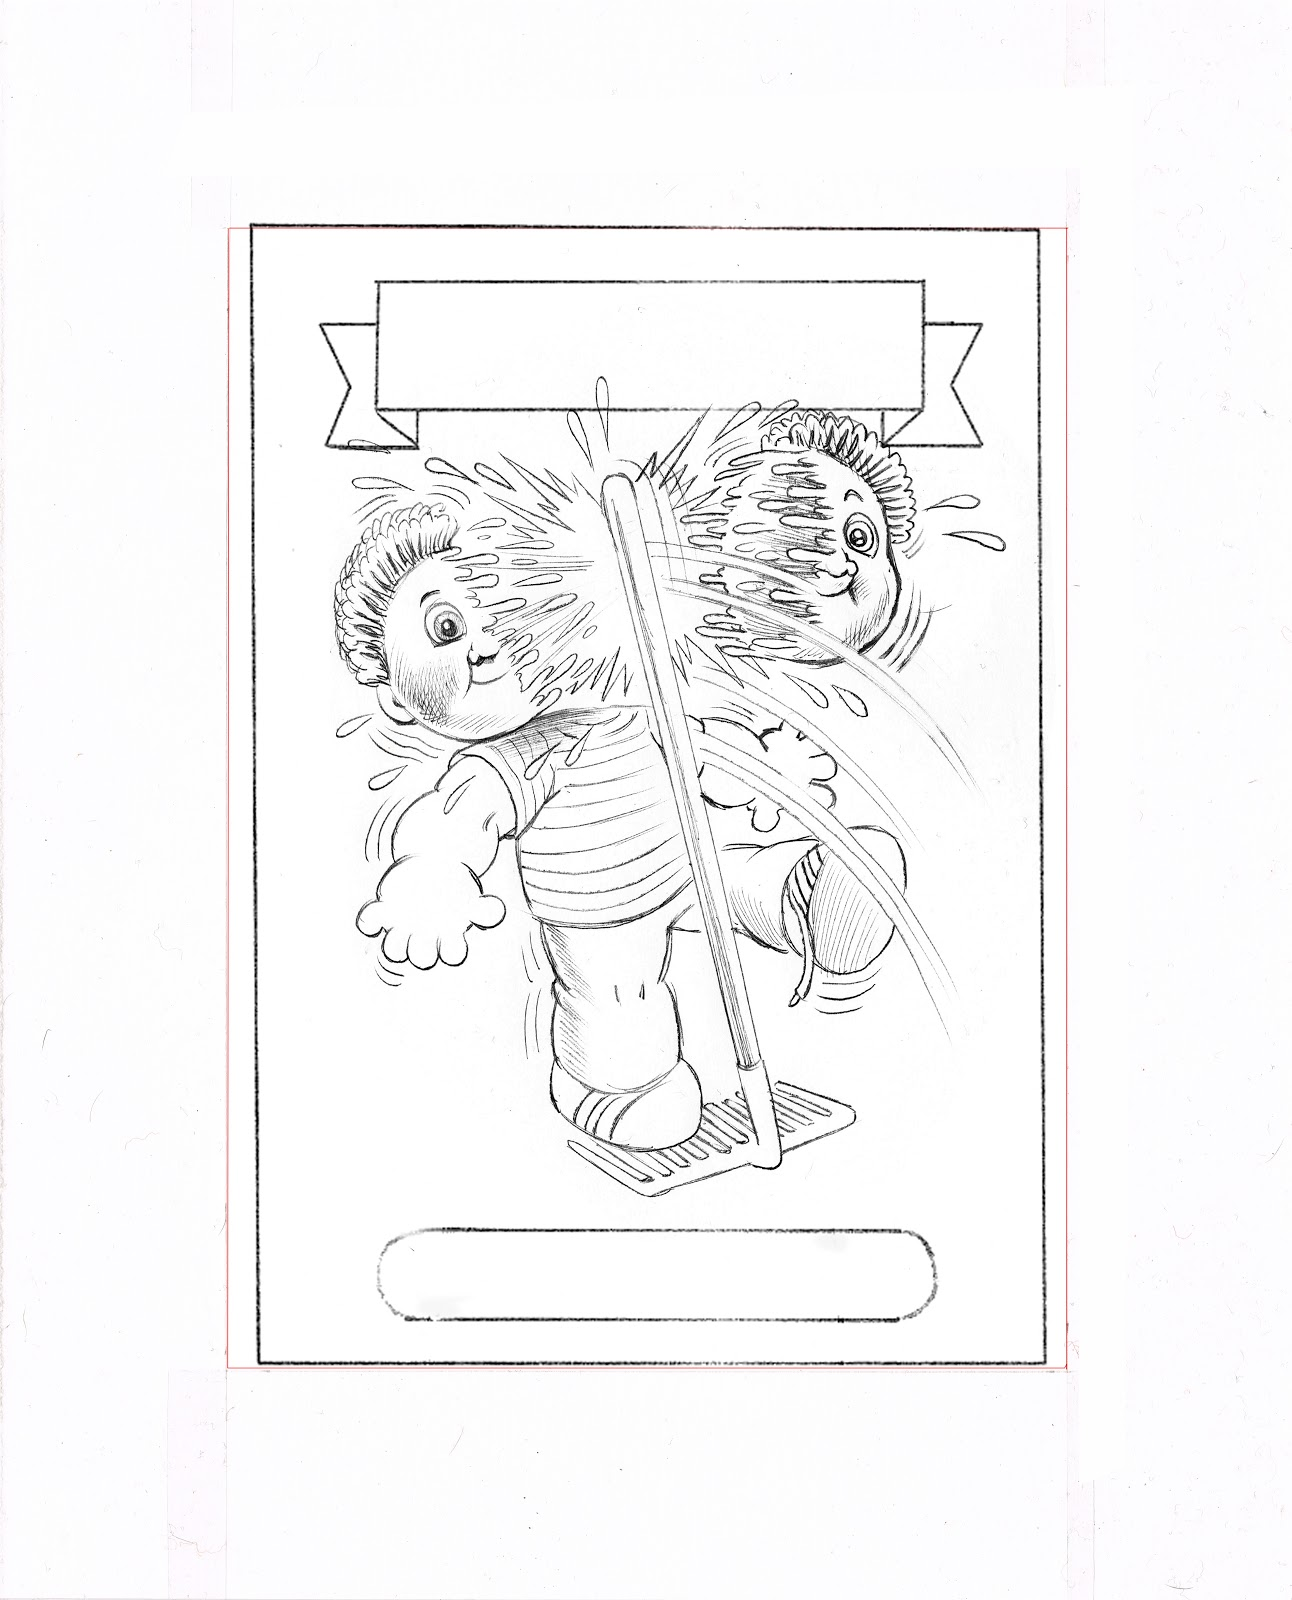 BRENT ENGSTROM'S BLOG: Garbage Pail kids Brand New Series